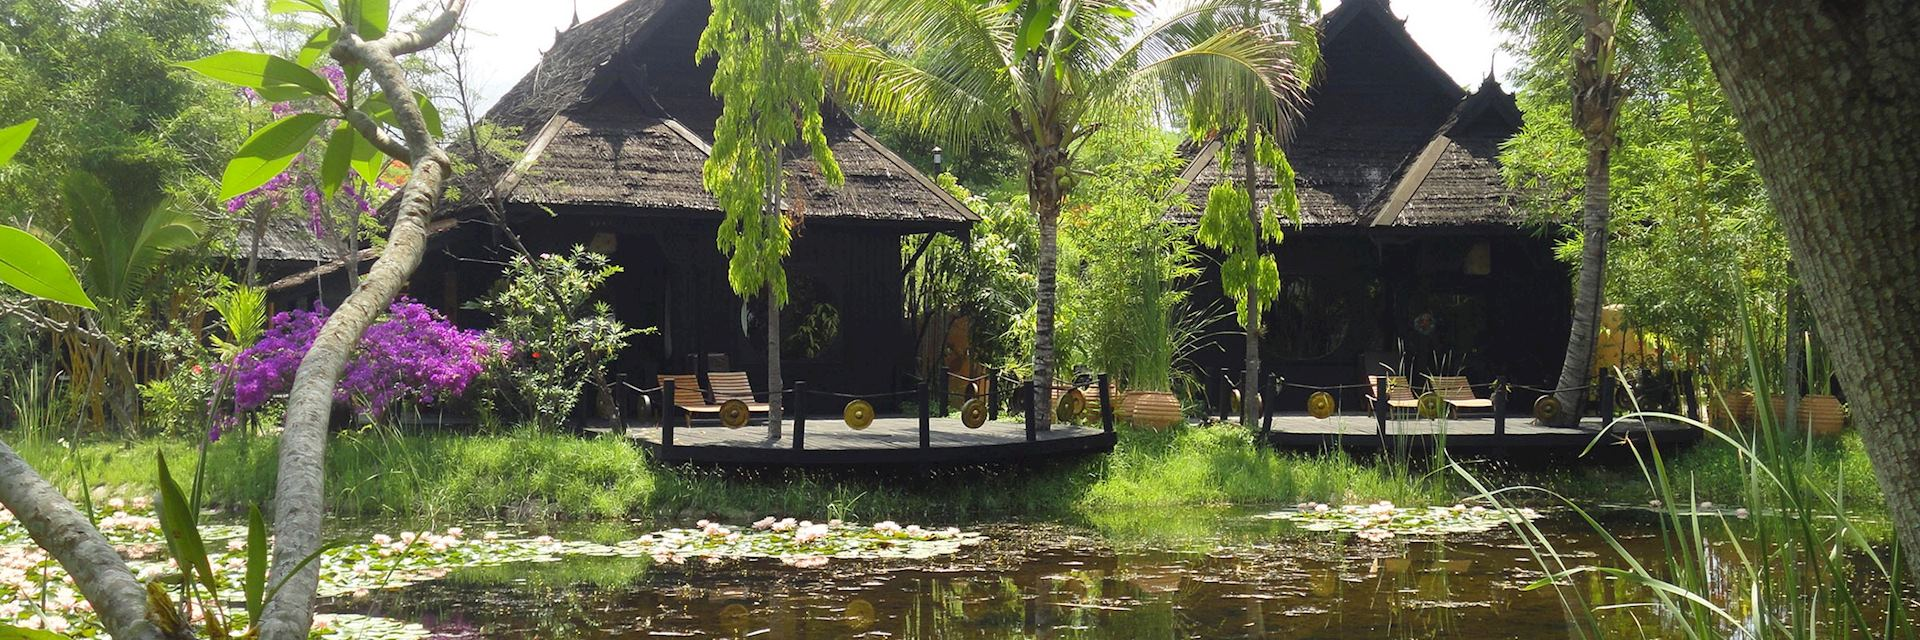 Inle Princess Resort, Inle Lake